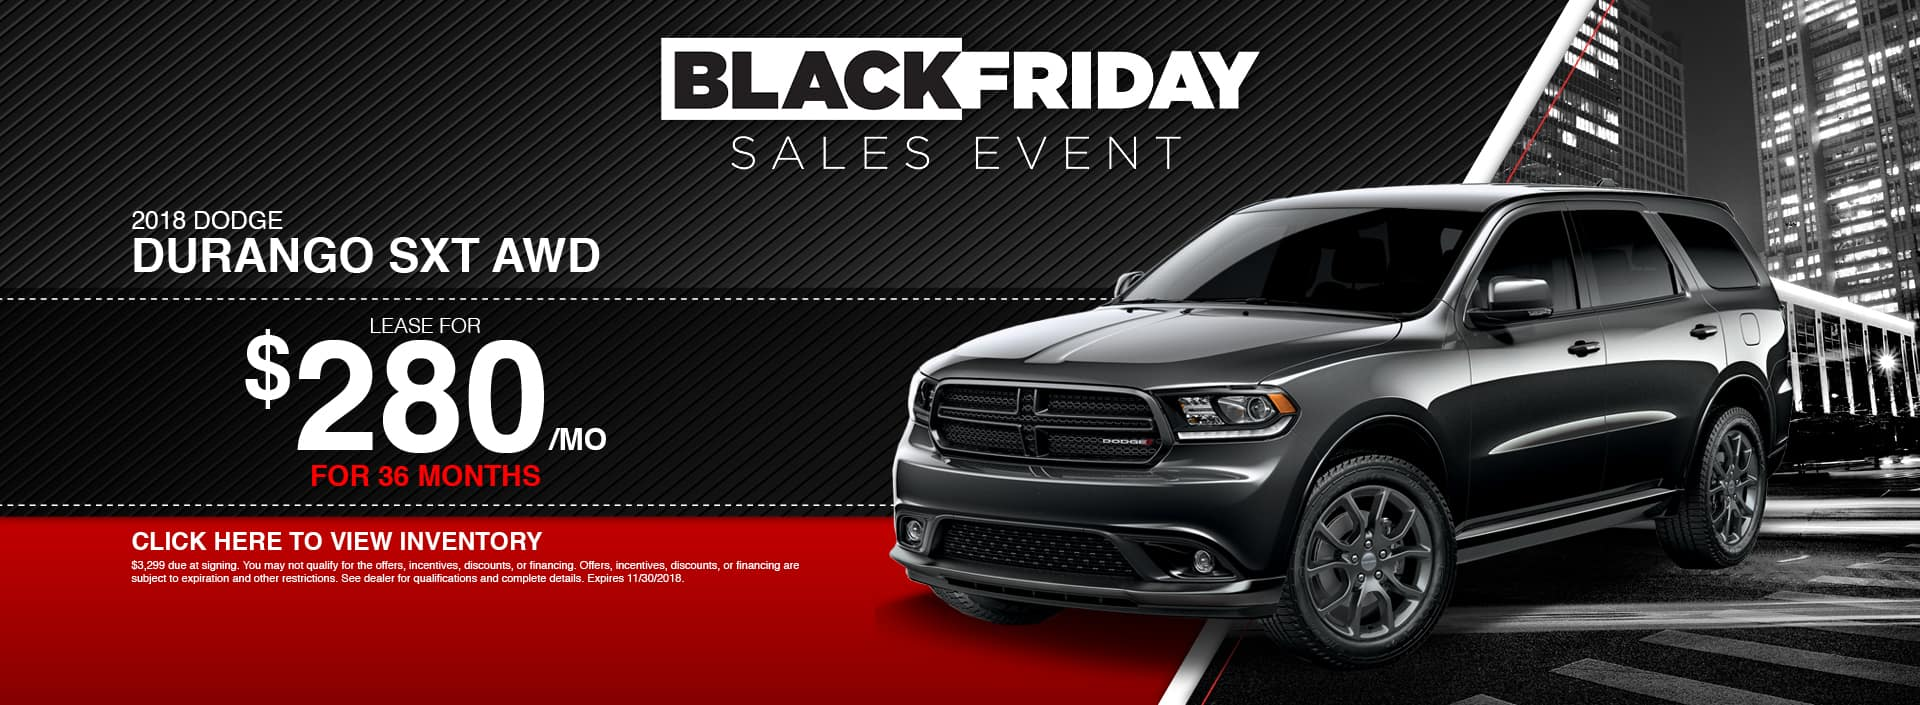 2018 Dodge Durango SXT AWD Lease Special at Waseca Dodge in Waseca, MN